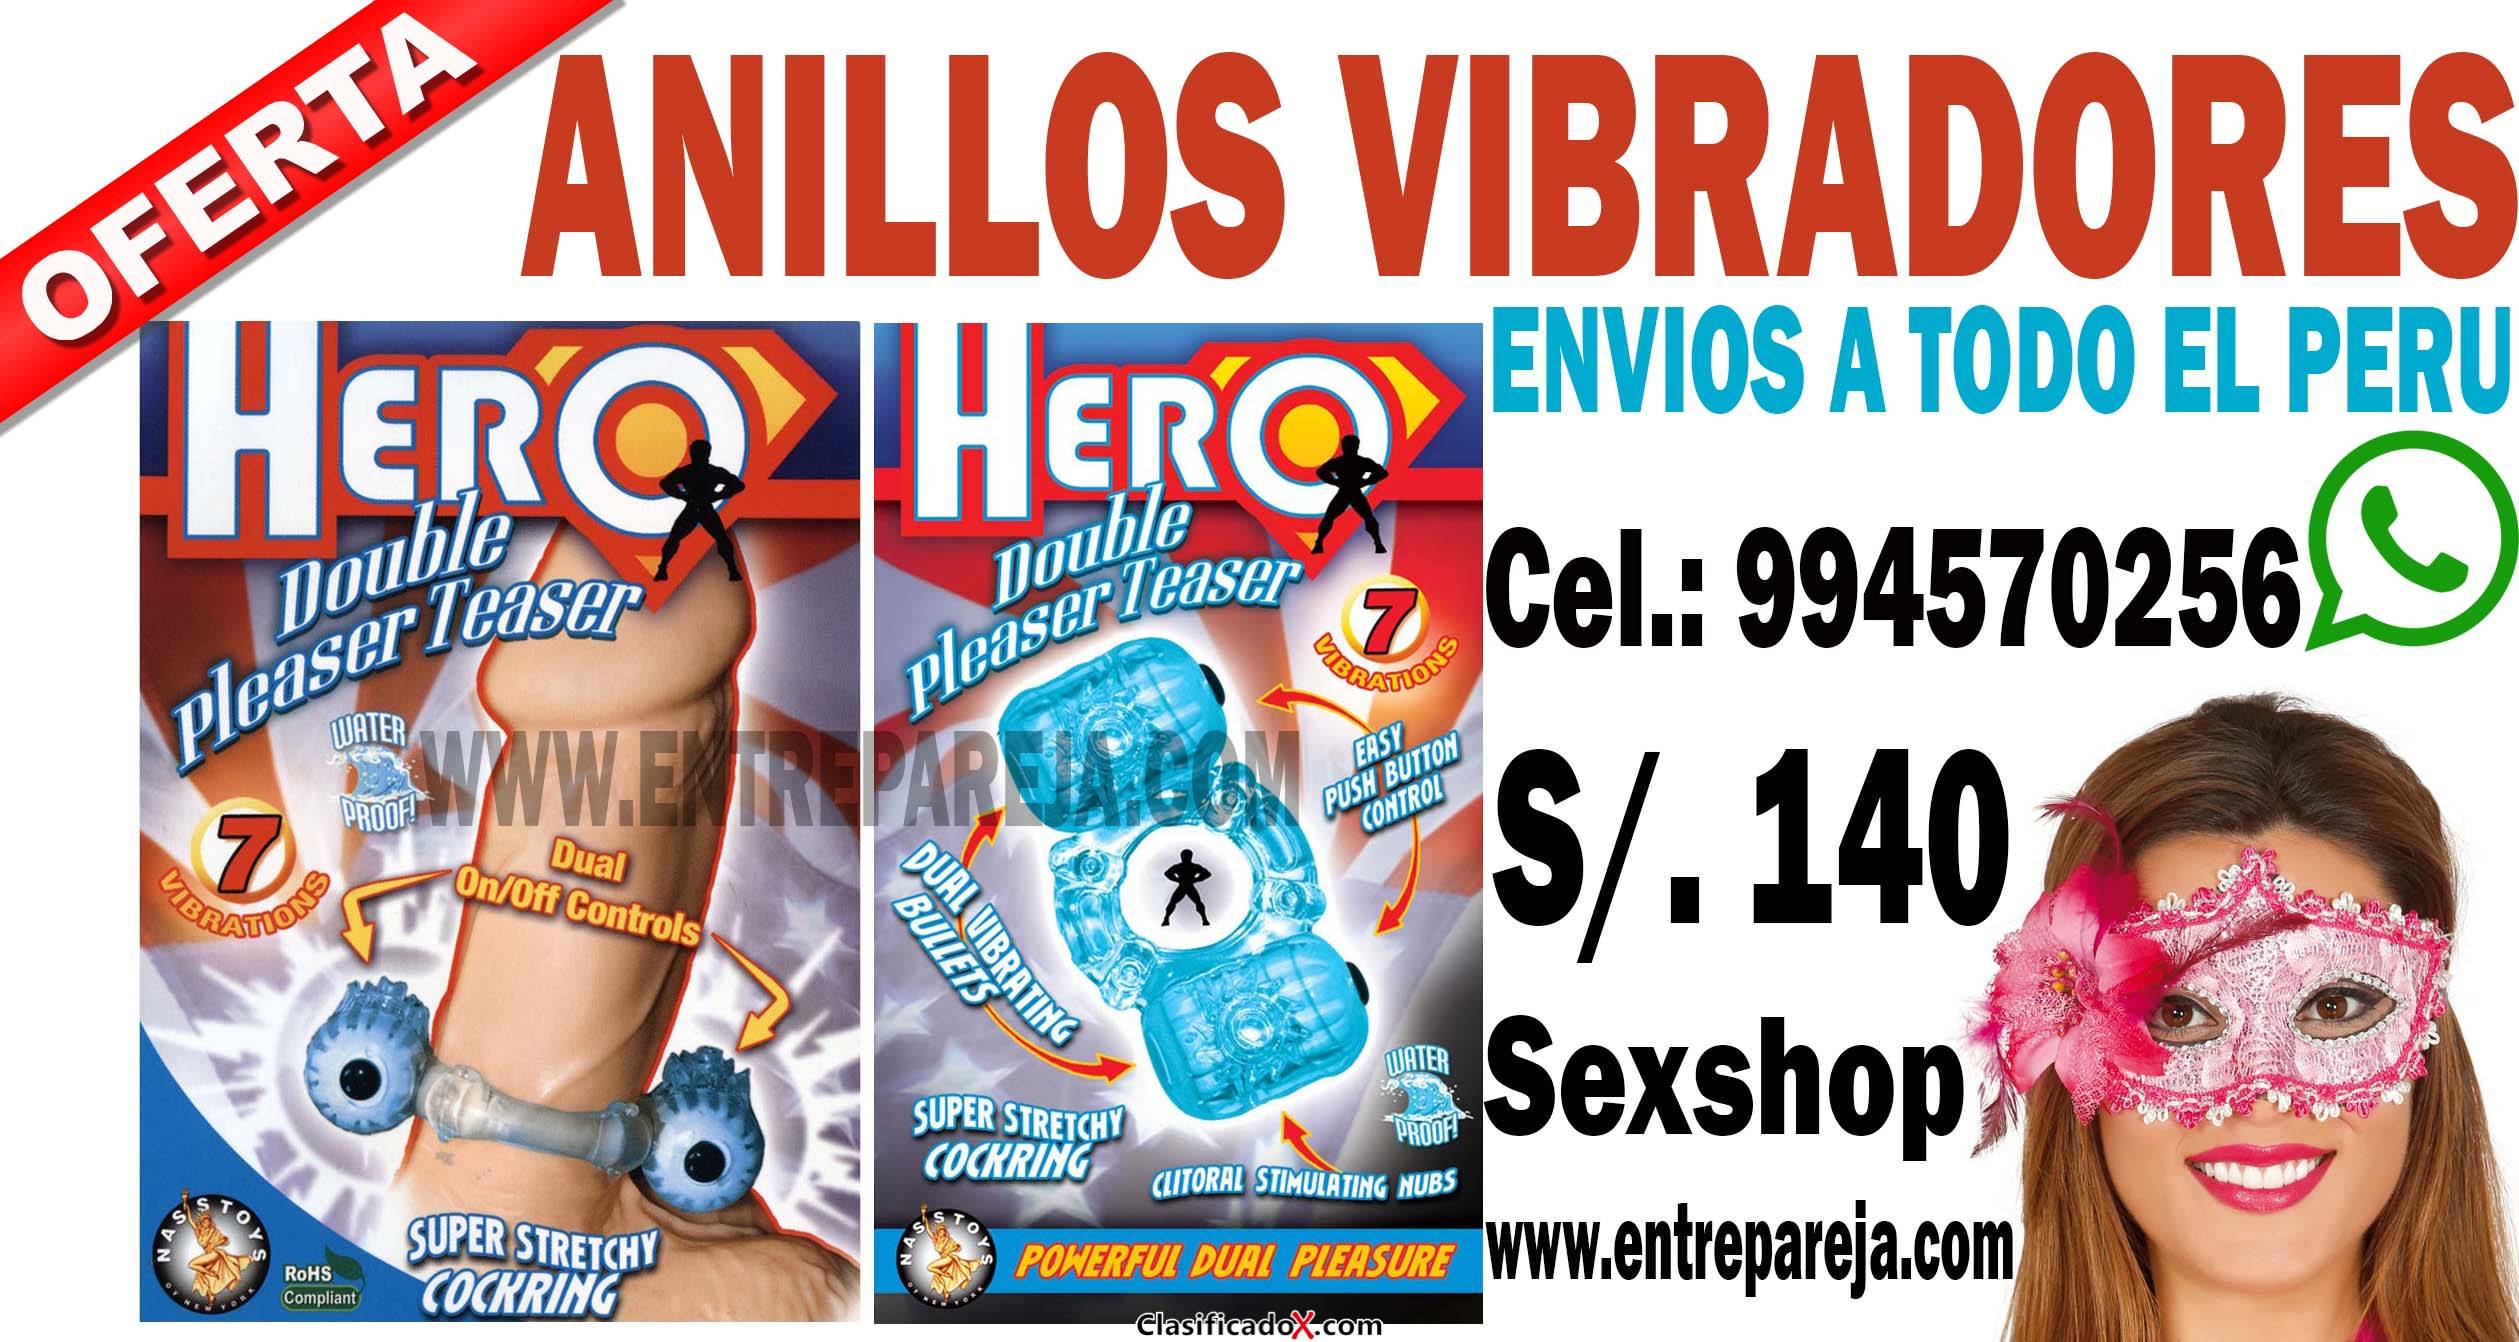 THE BIG BOSS VIBE  SEXSHOP CAYMA PERU JUGUETES TLF: 01 4724566 - 994825780